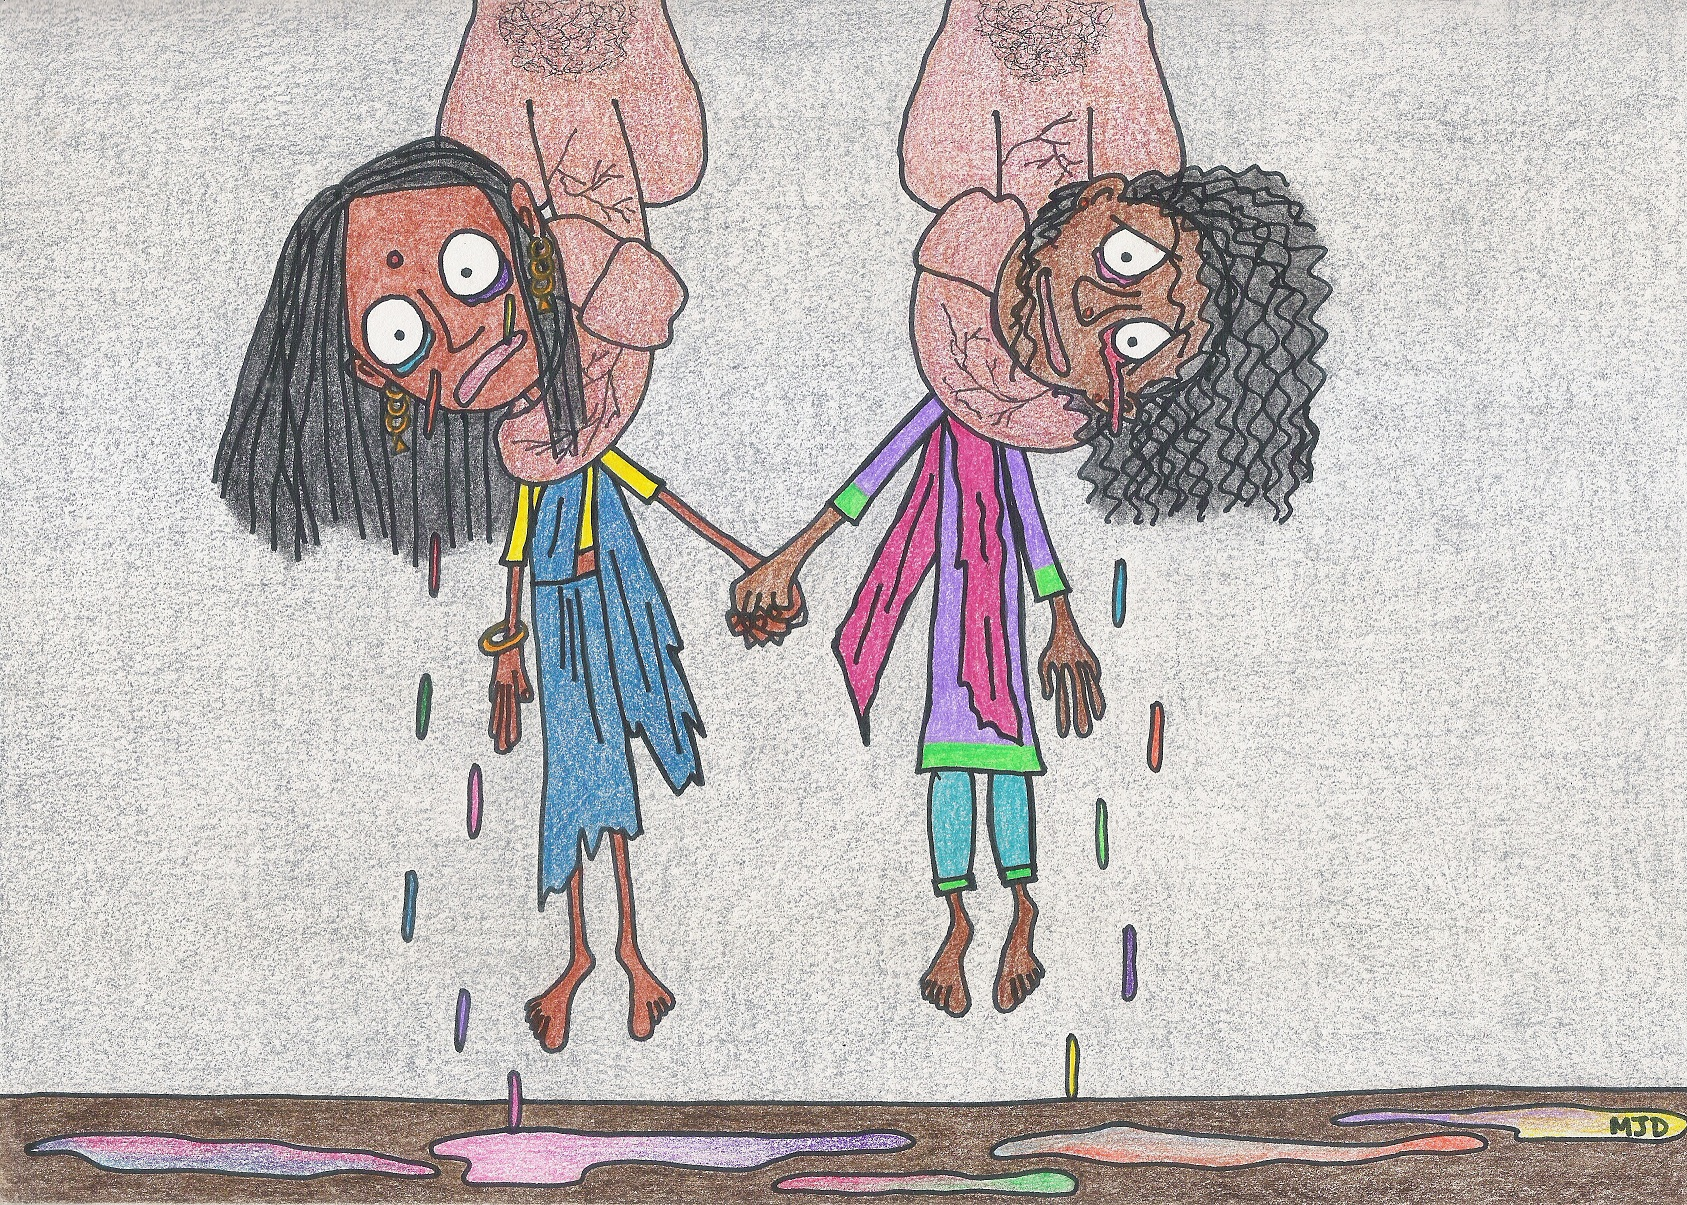 A child like drawing of a gay female pair of